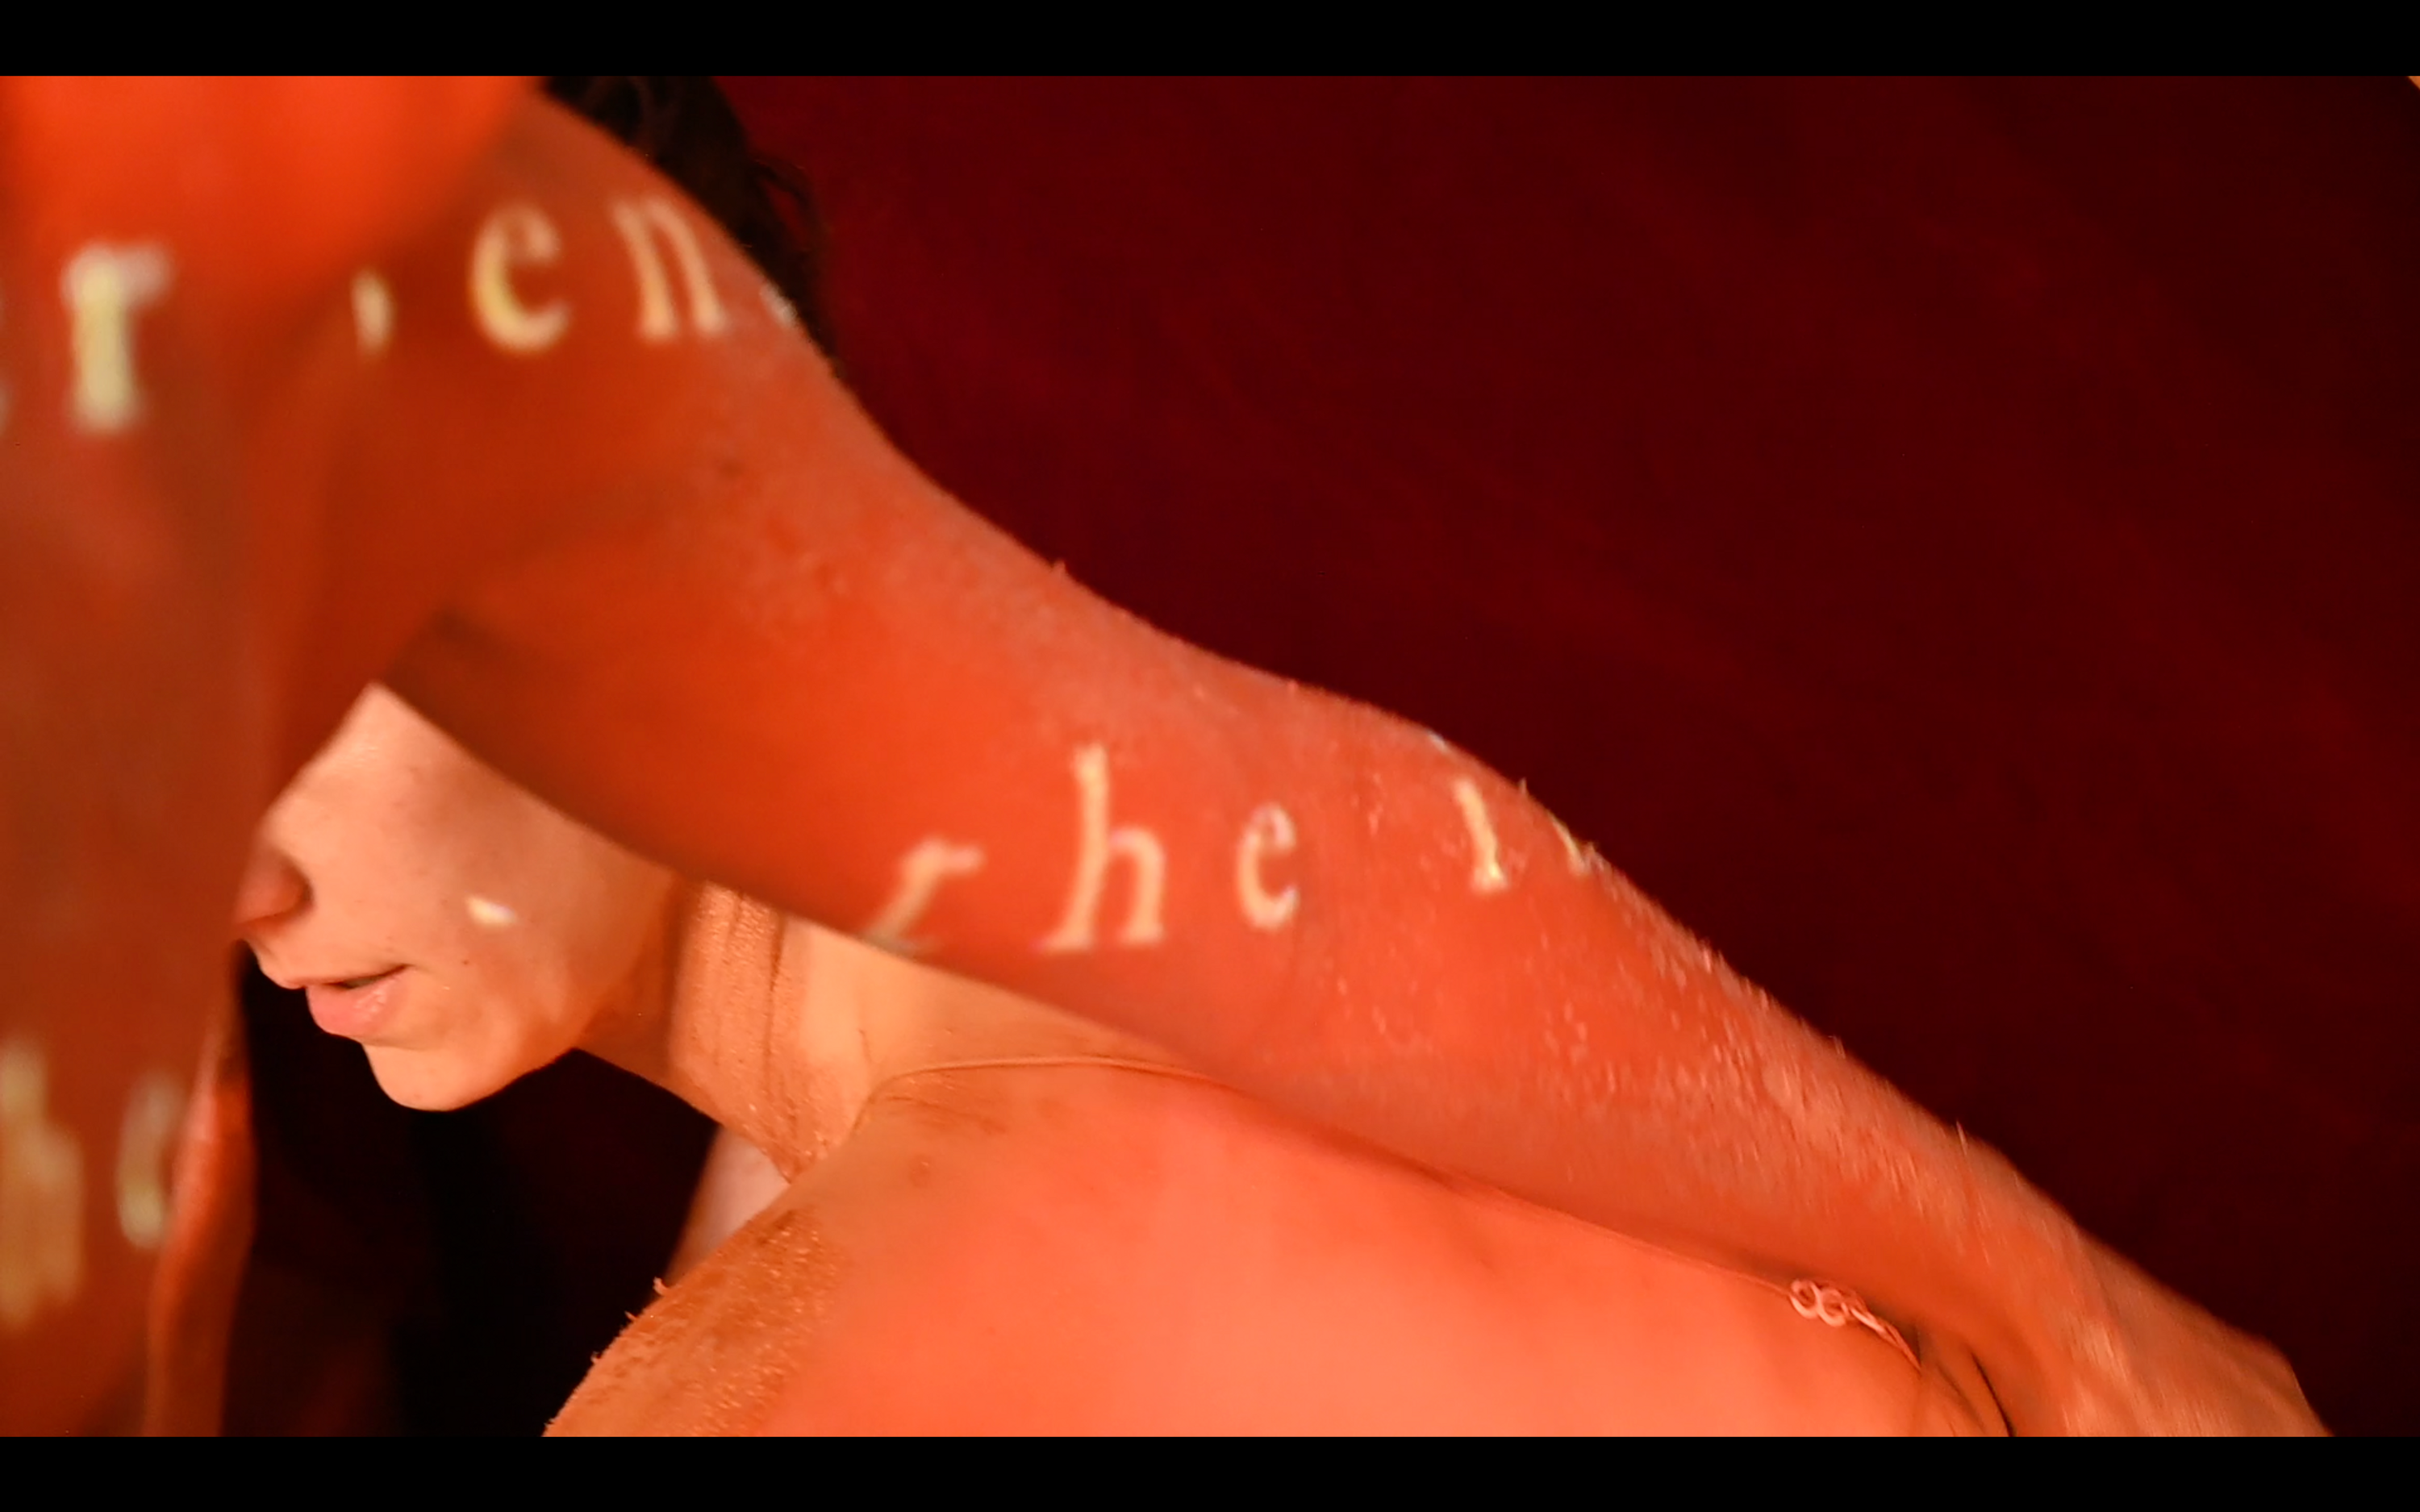 Video still from Beneath the surface.